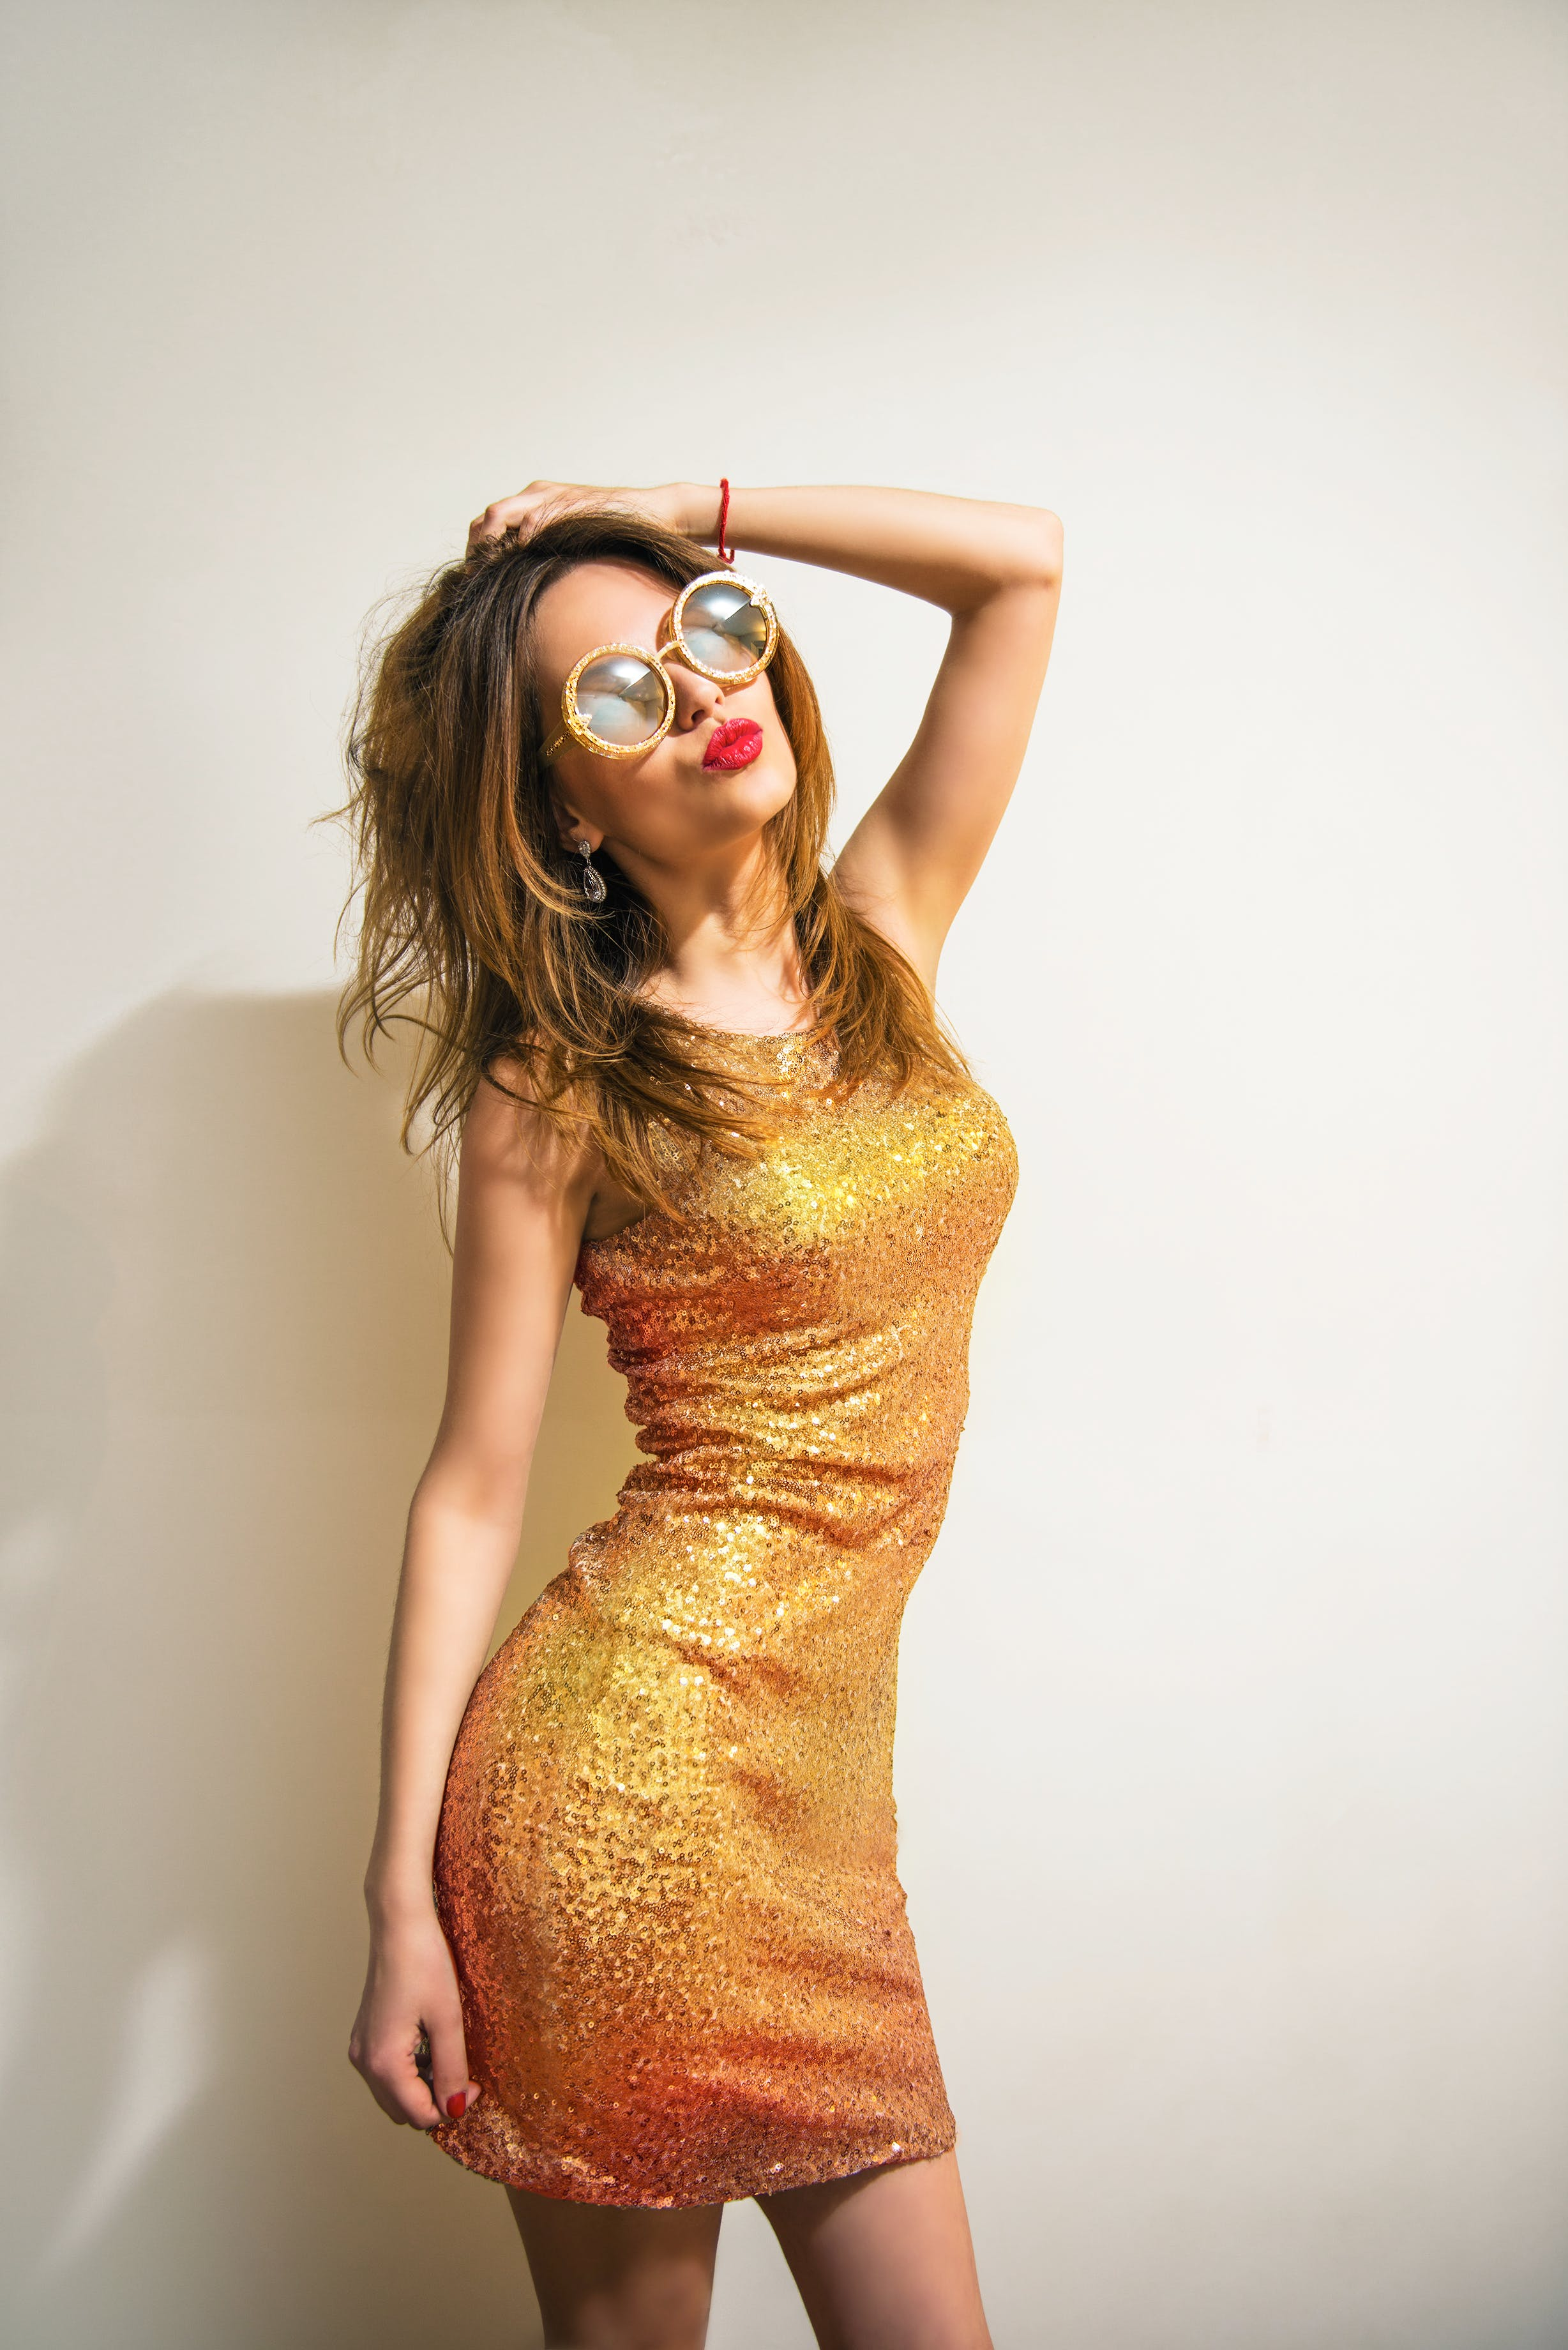 Woman Wearing Gold Sleeveless Mini Dress